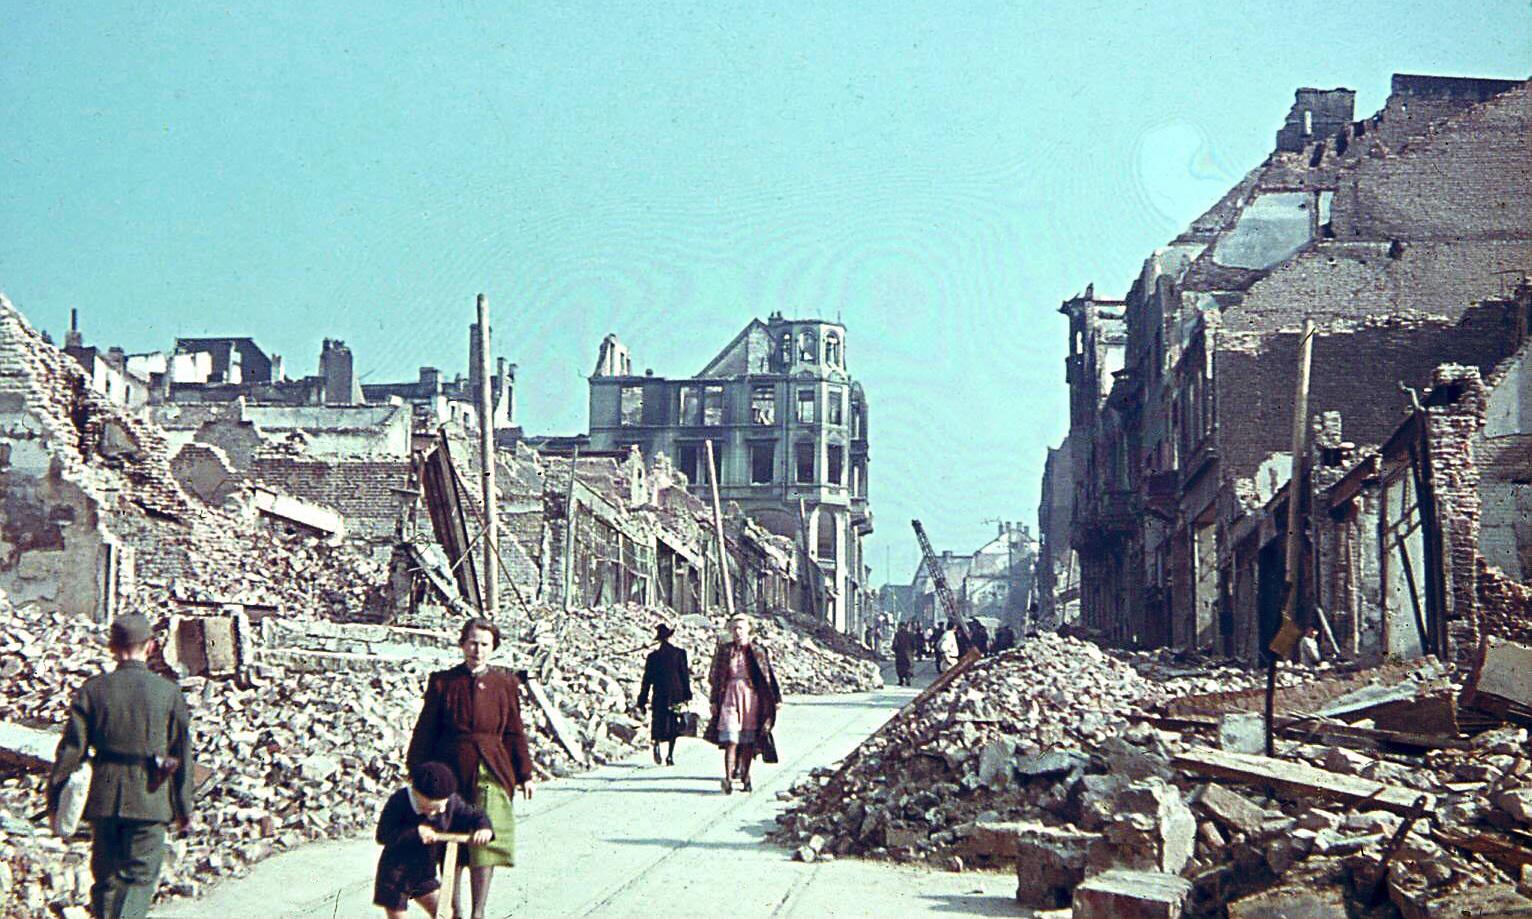 My great uncles' war: how my German-British marriage linked two wartime tragedies